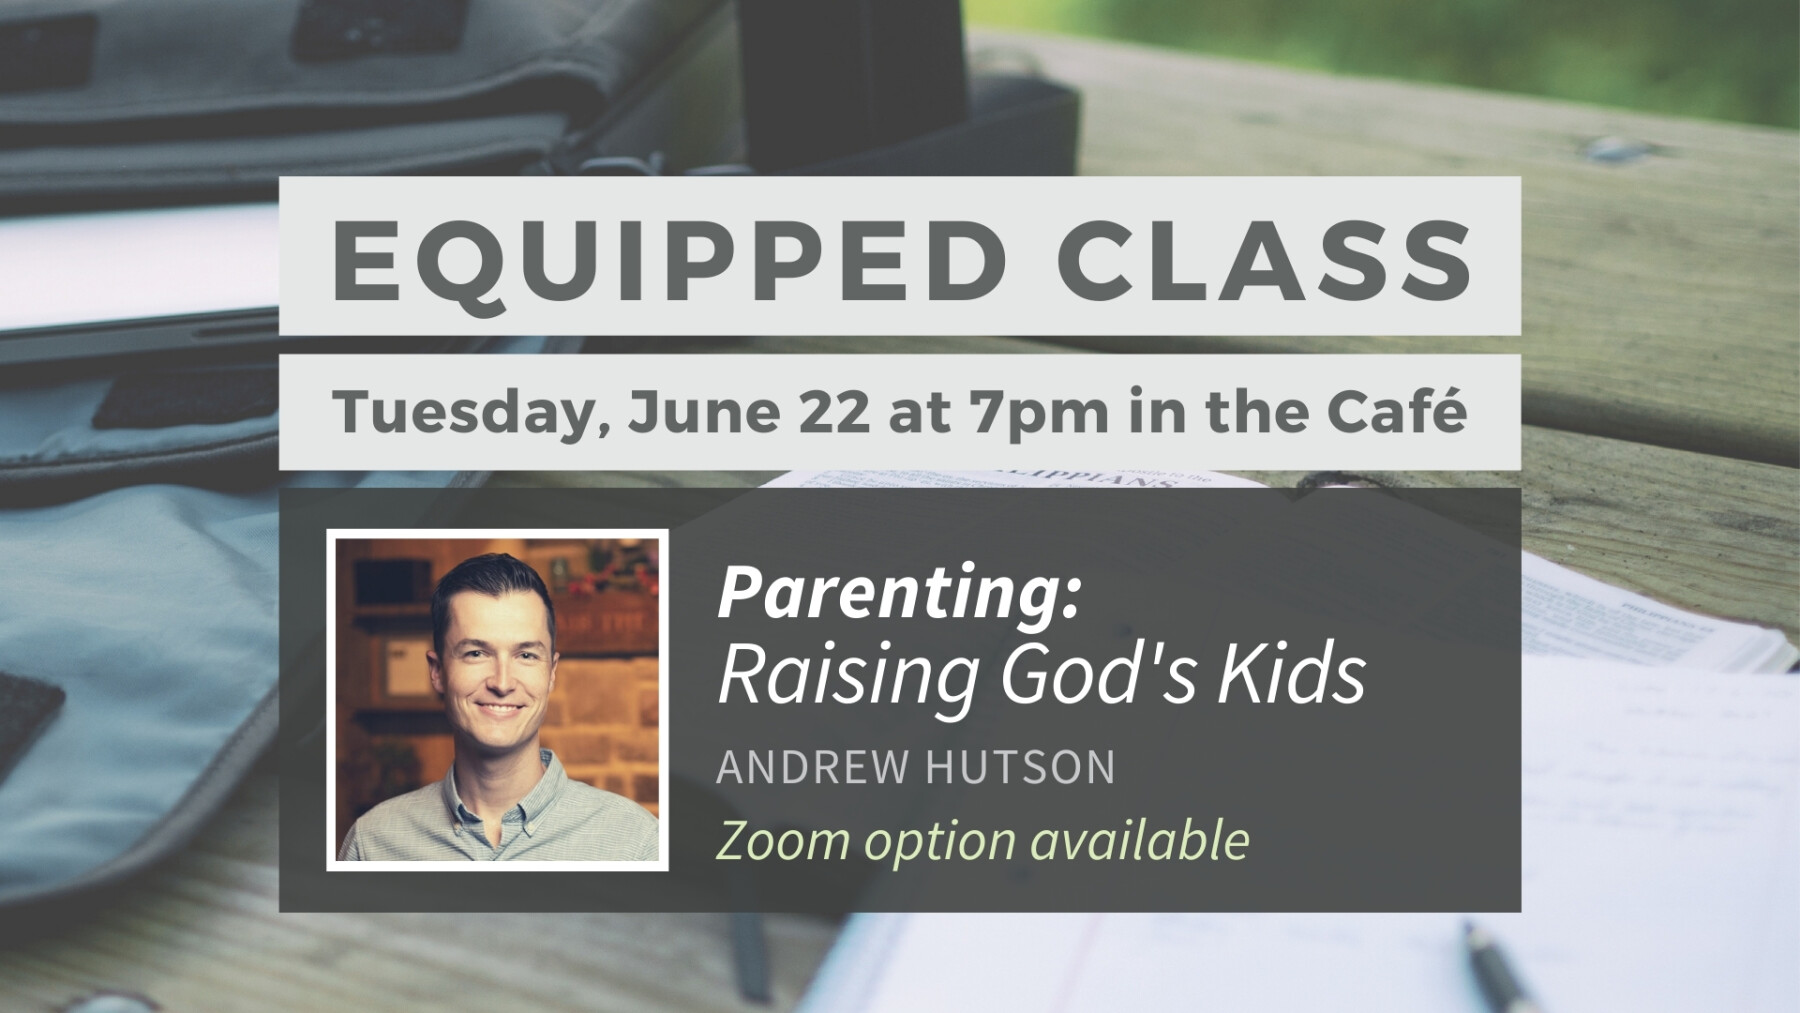 Equipped Class: Parenting - Raising God's Kids